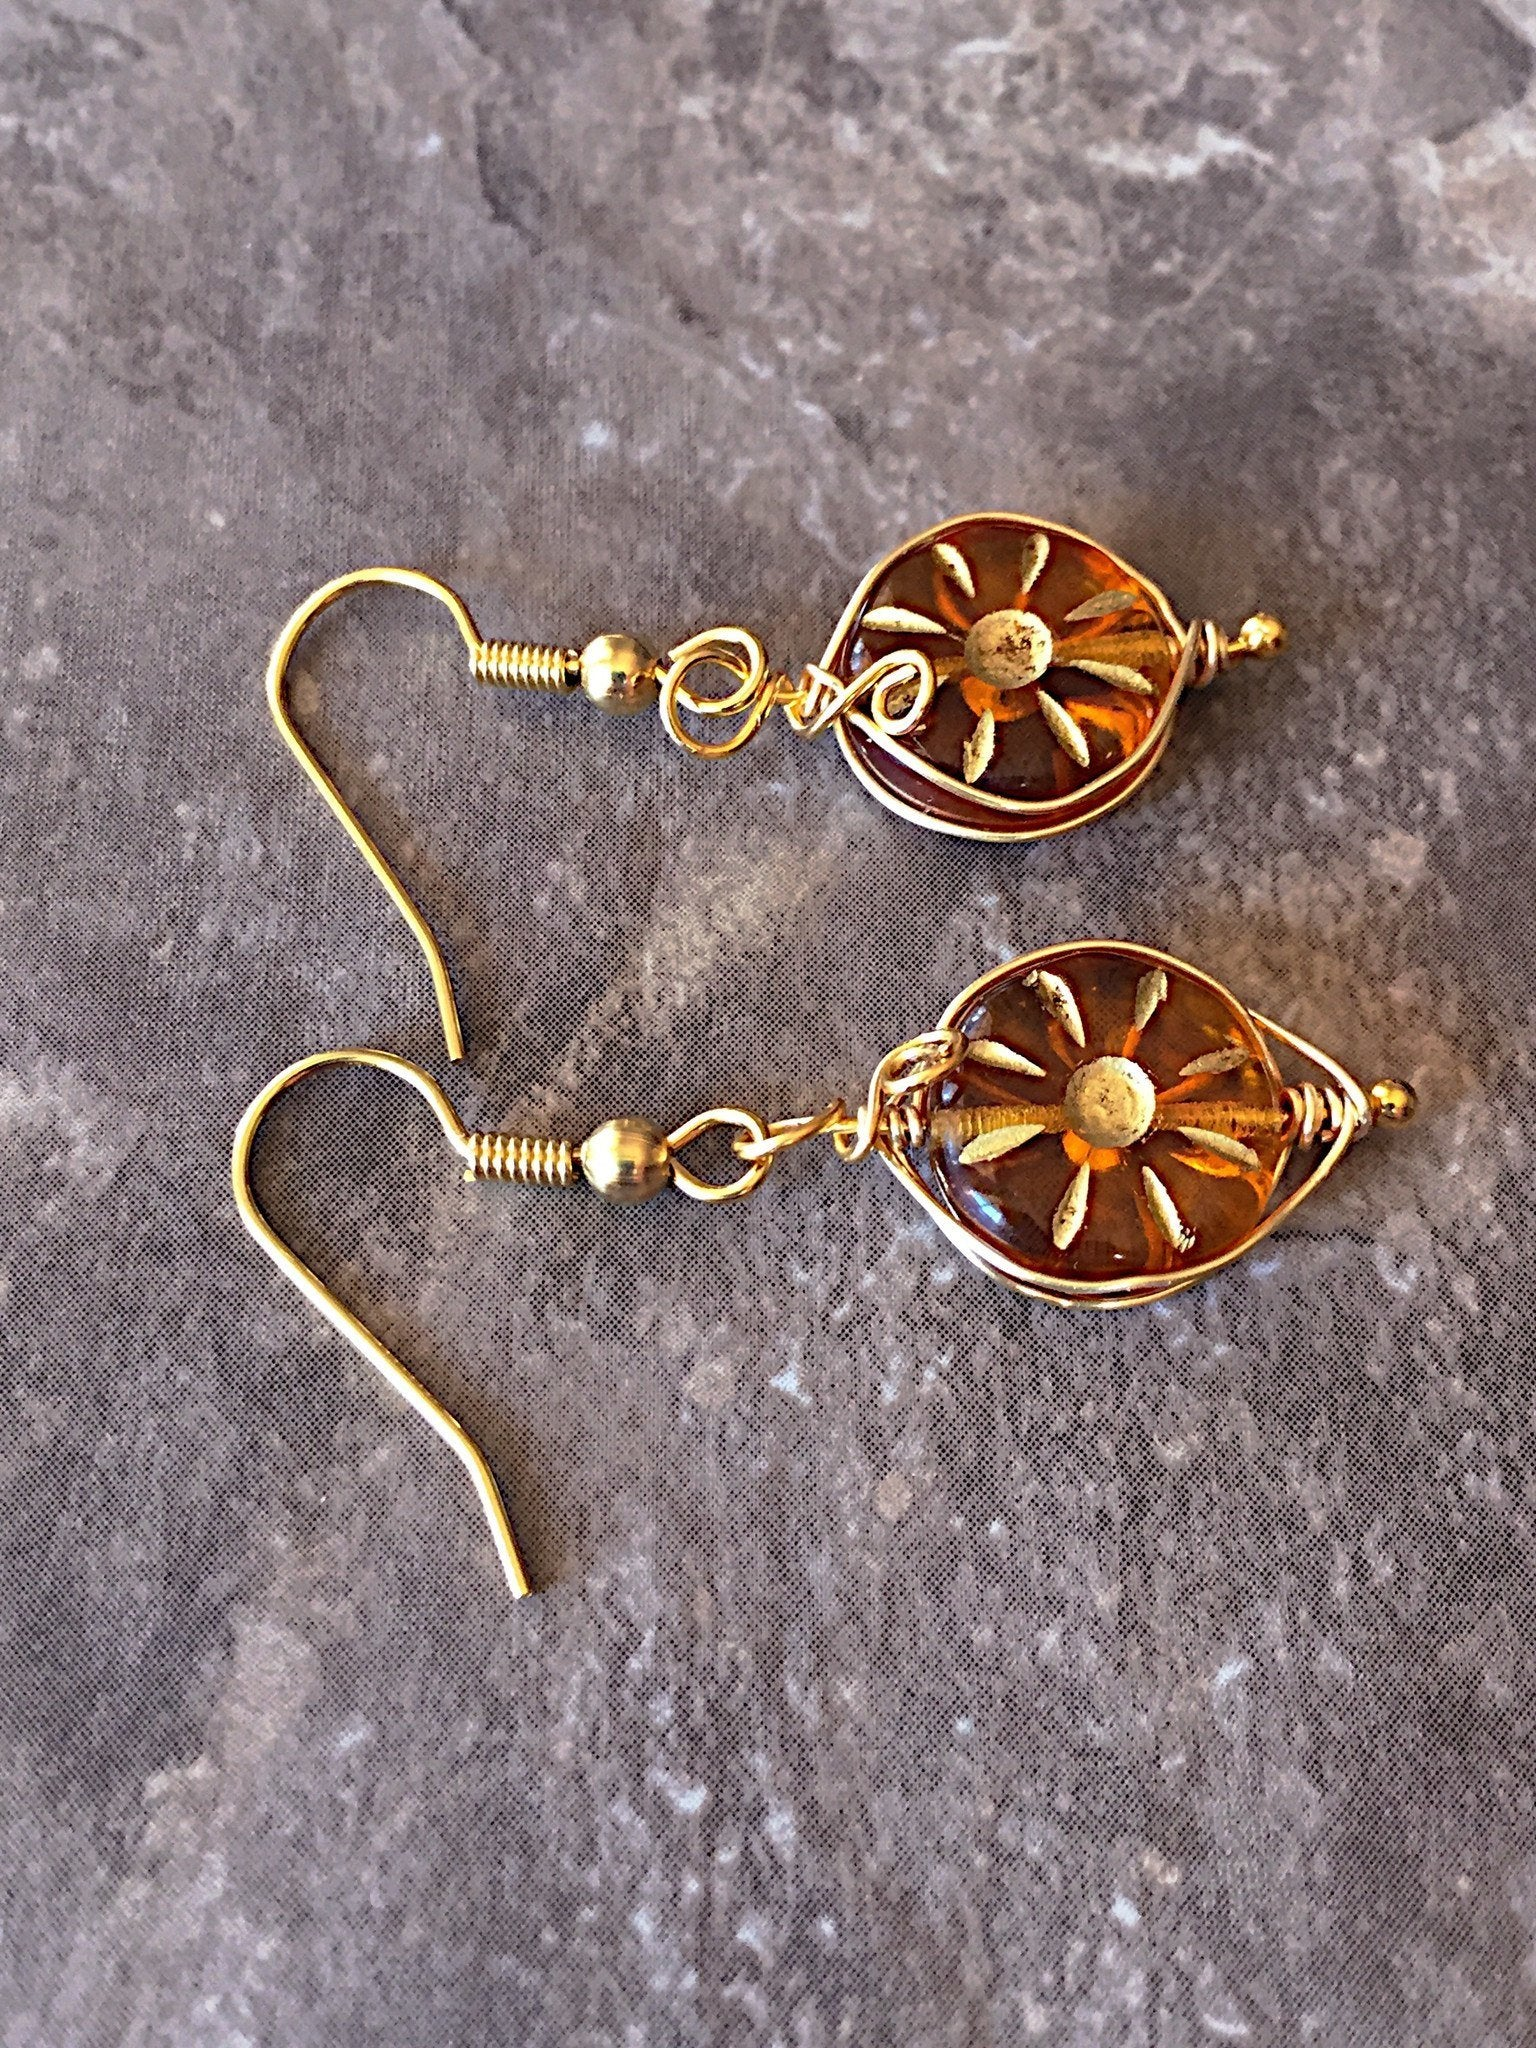 Honey orange gold earrings - handcrafted Jewelry Luzjewelrydesign